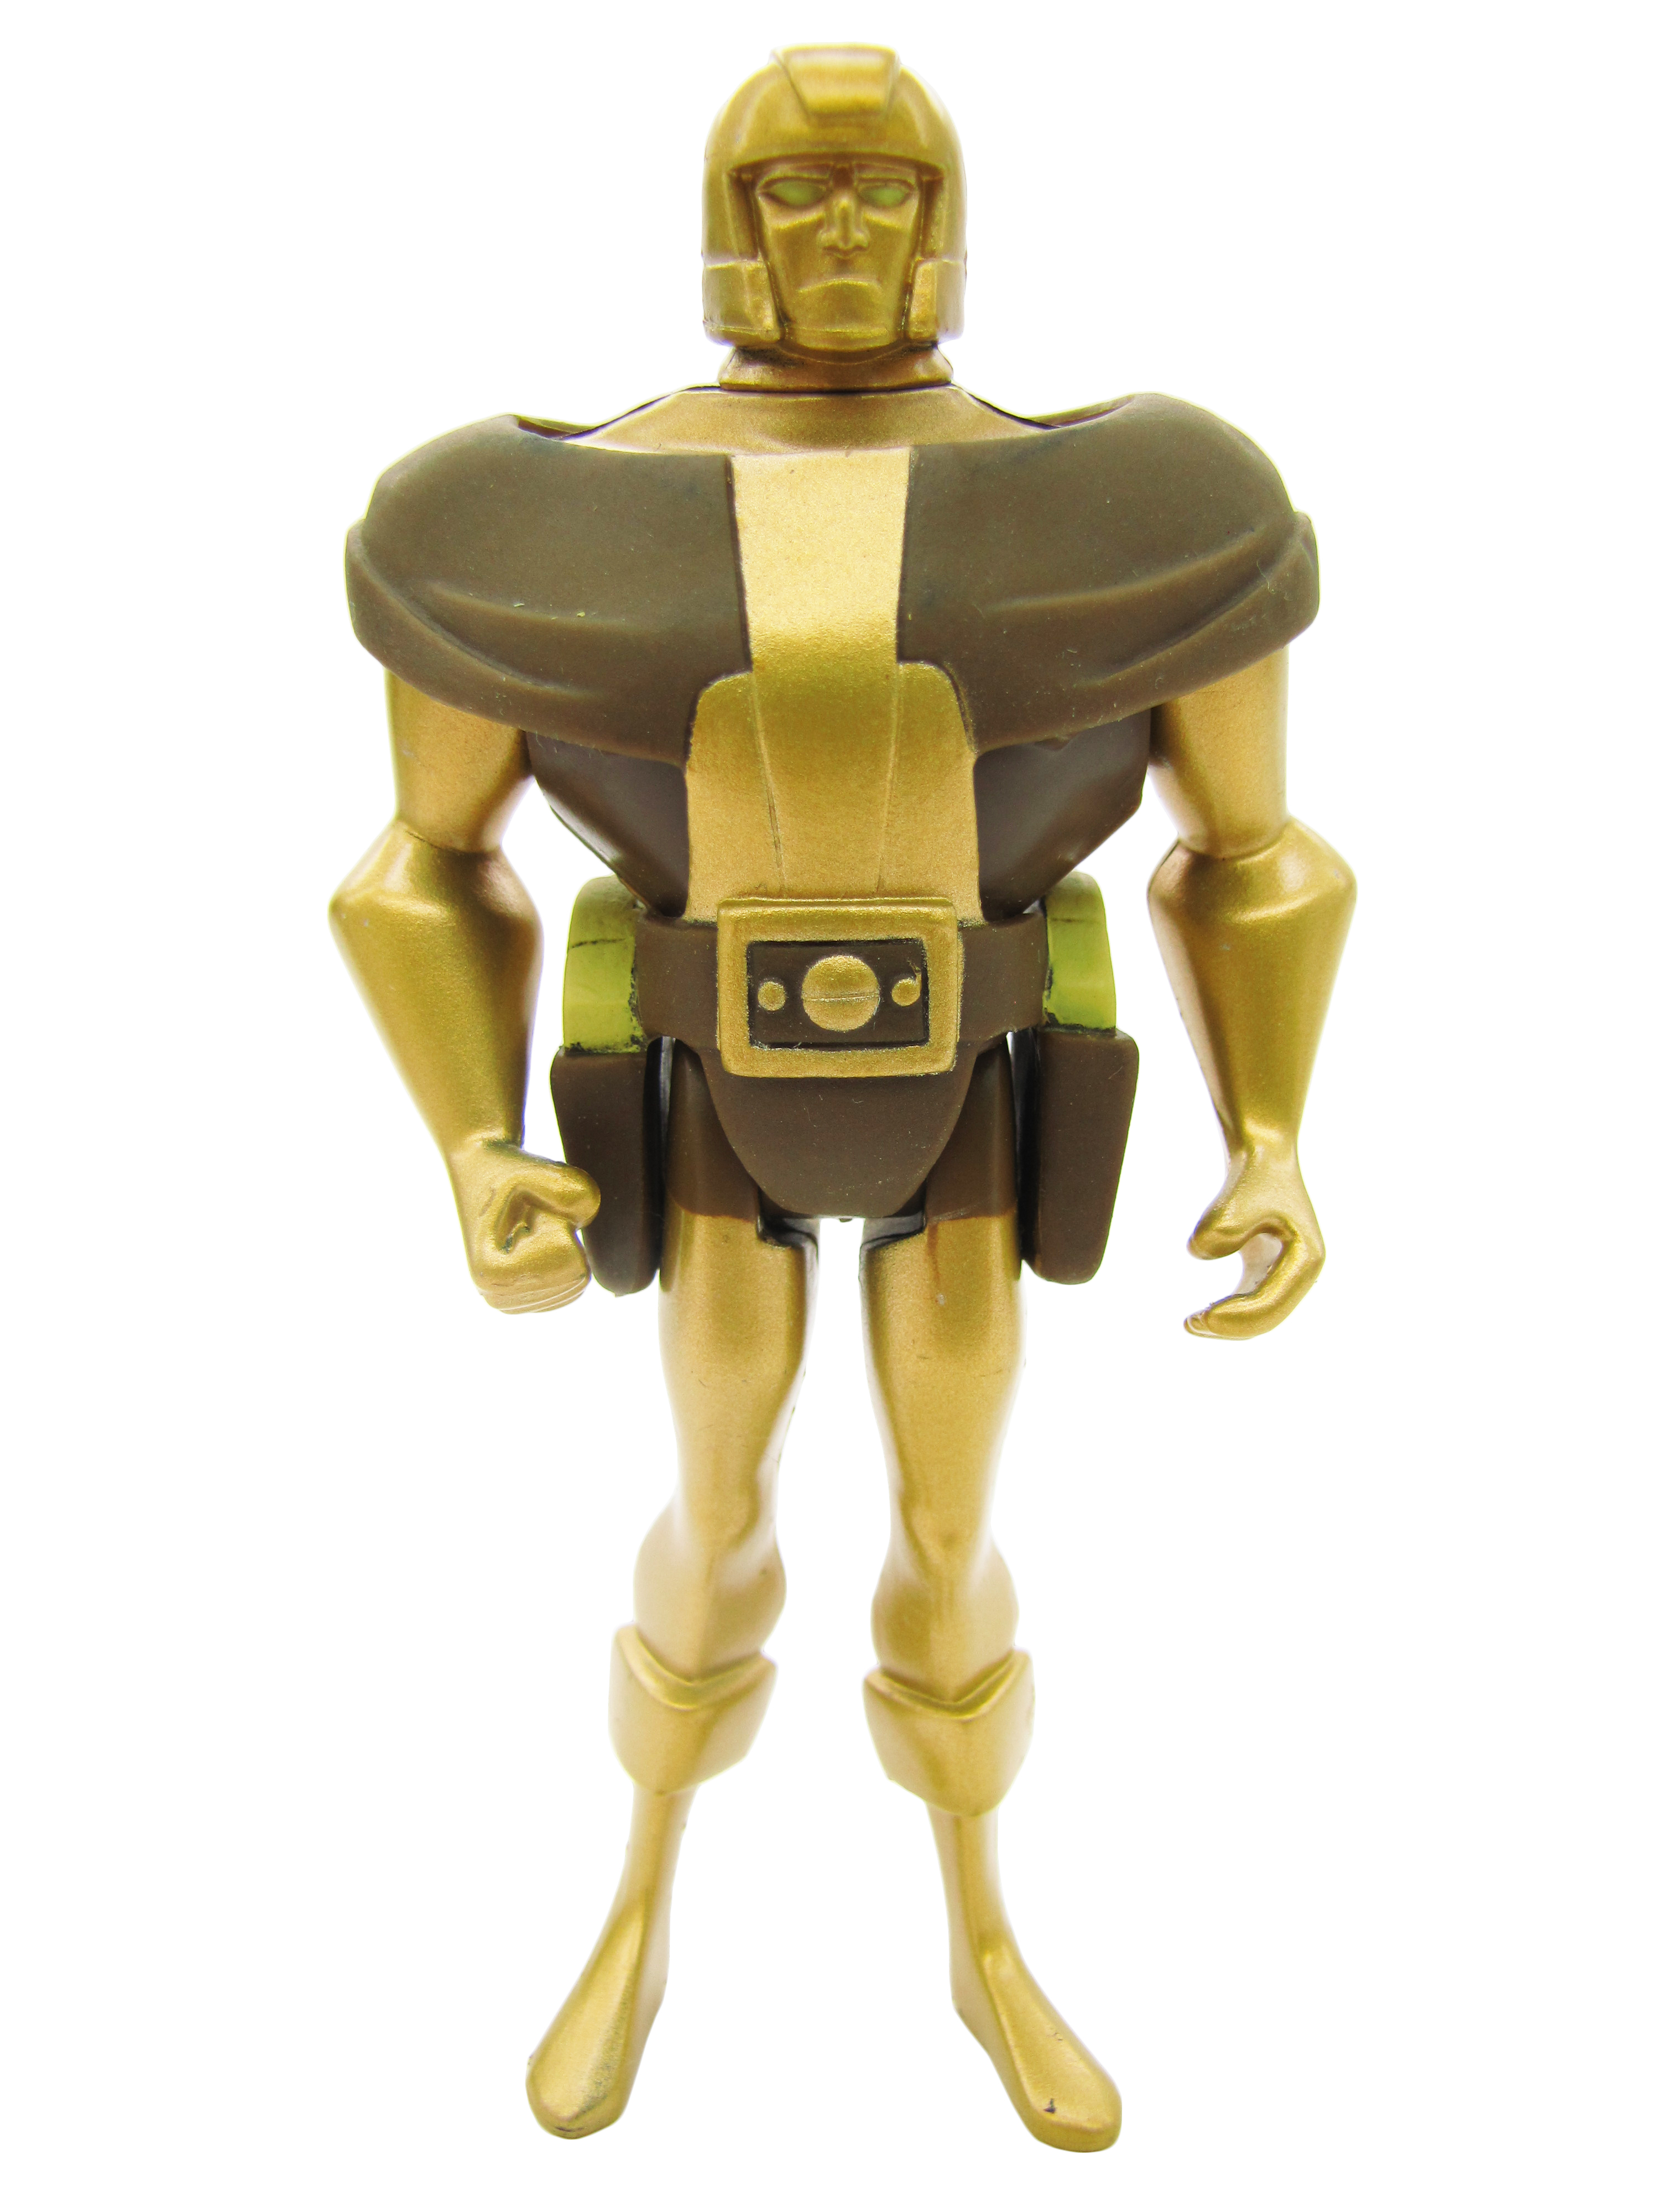 2011 Justice League Unlimited MATTY COLLECTOR GOLDFACE EVIL STAR PACK GOLDFACE